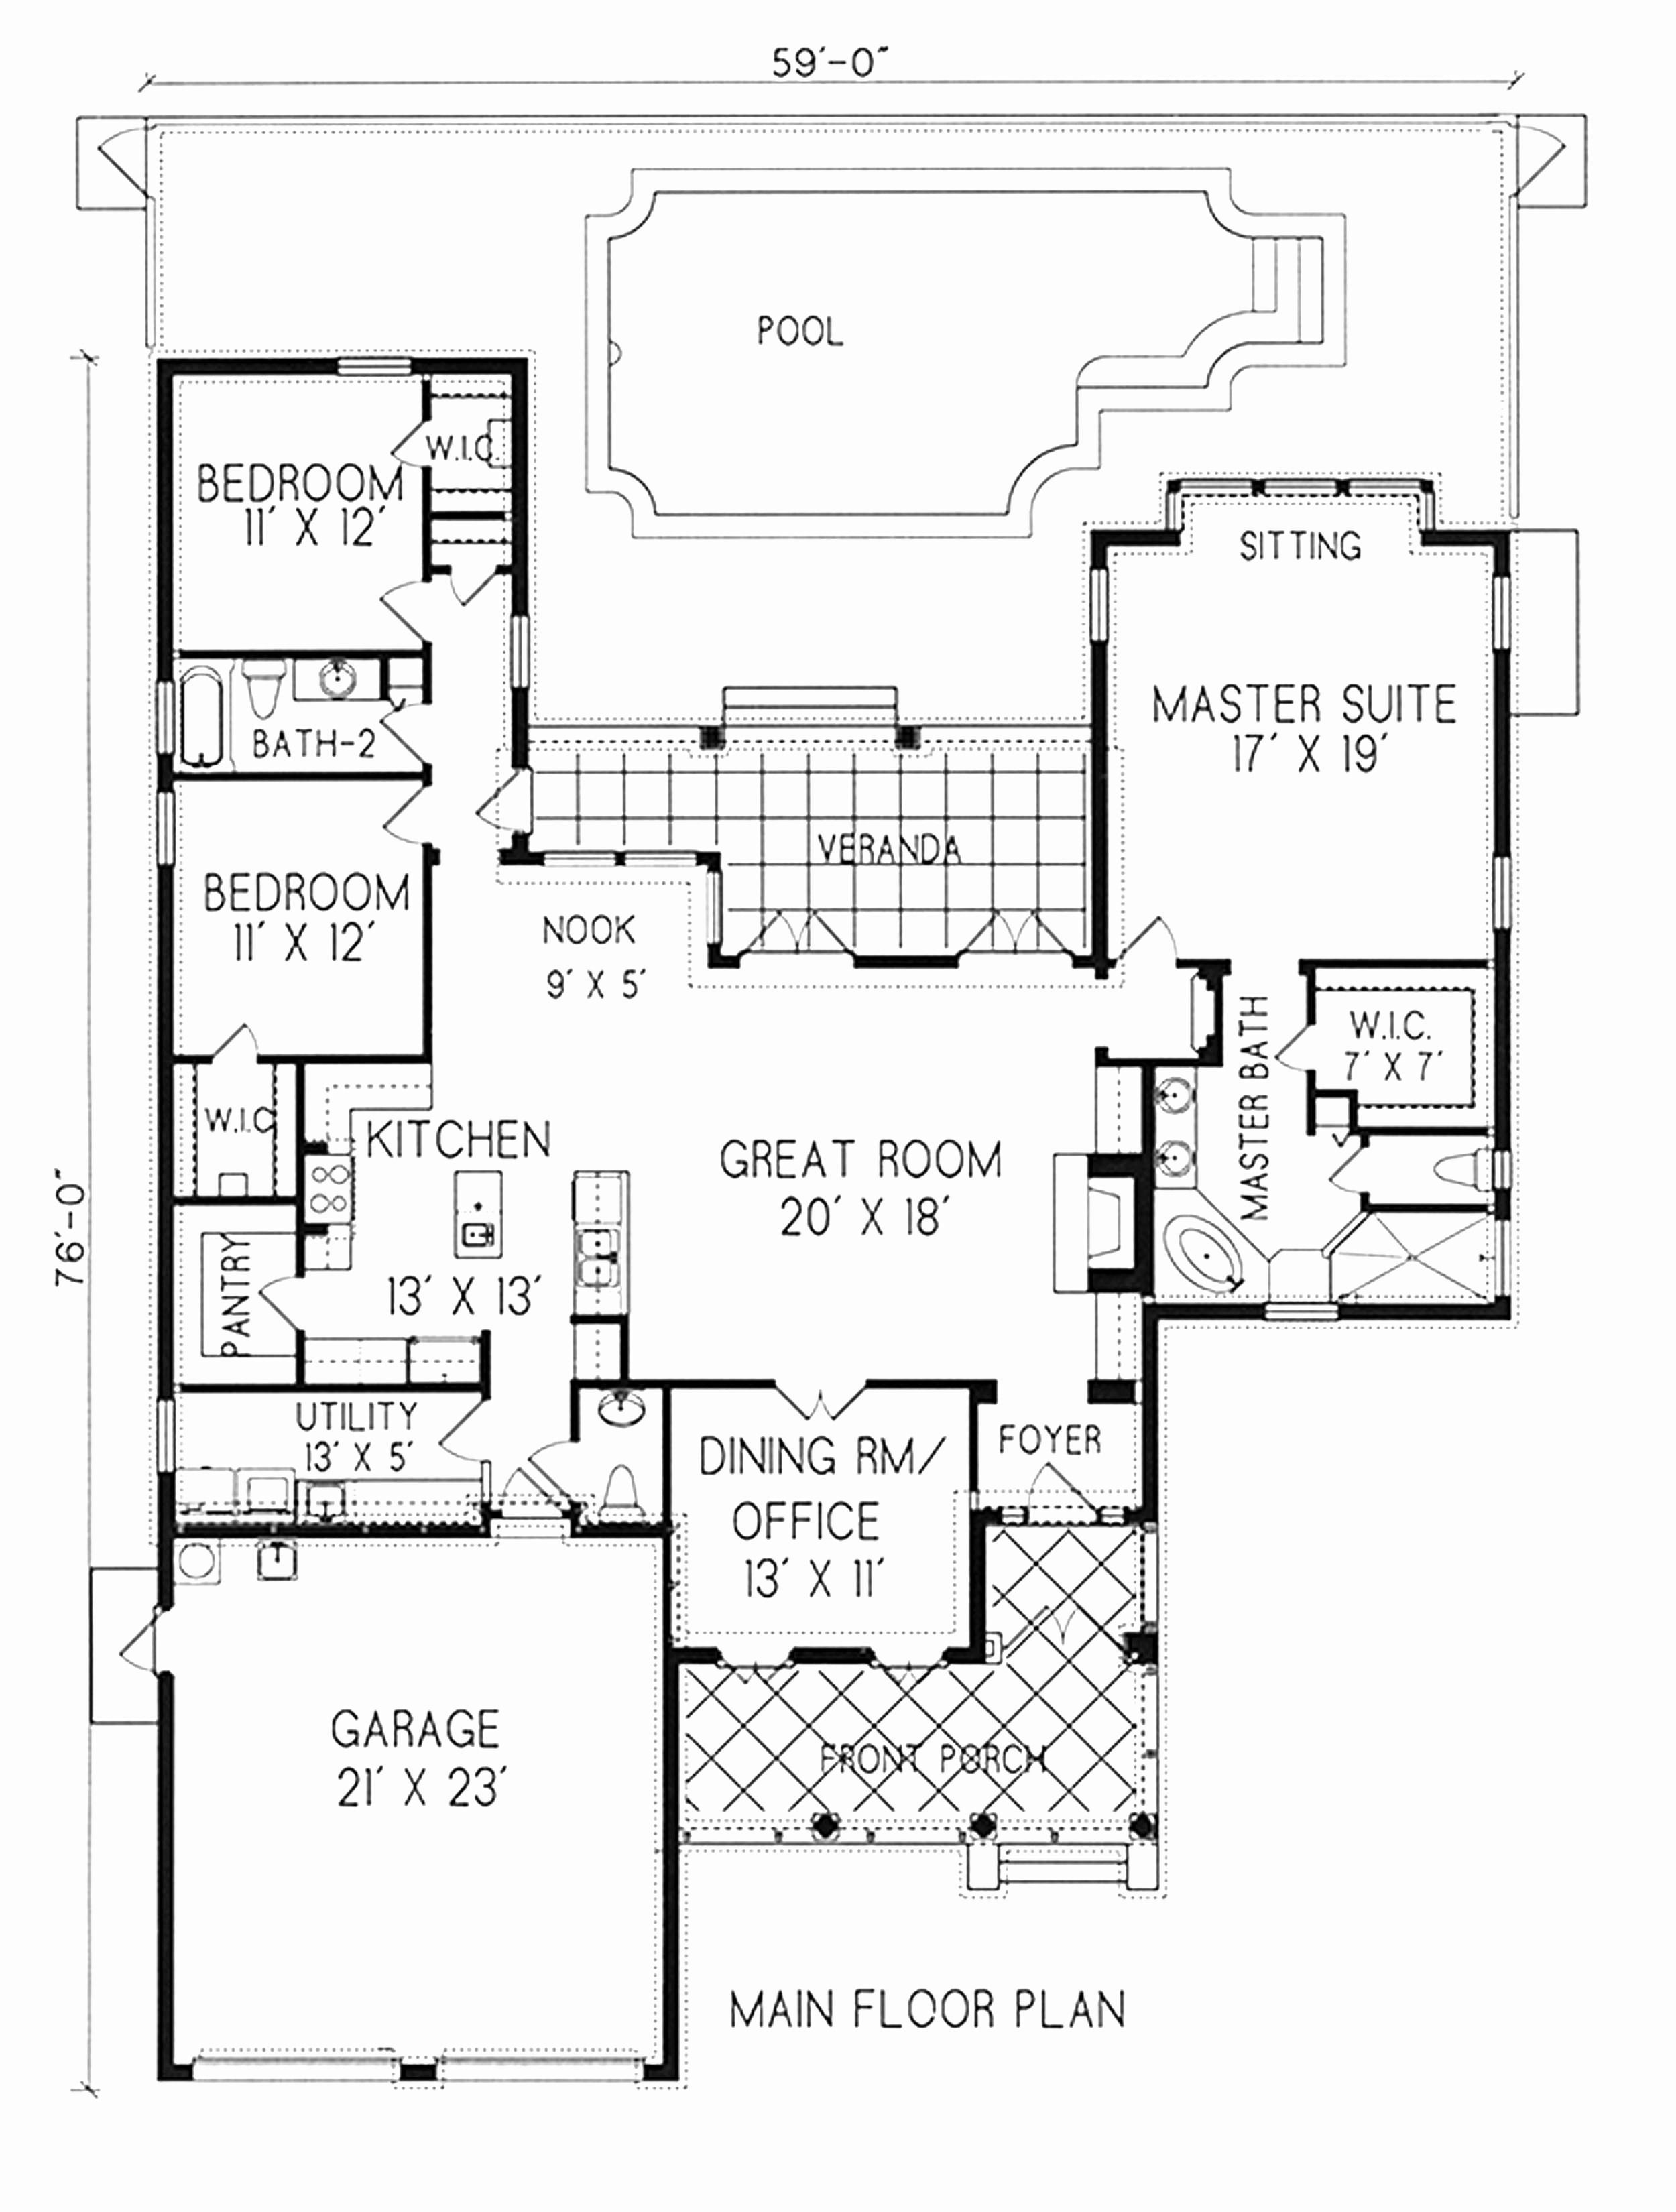 Design A Bathroom Floor Plan Online Check More At Http Www Homeplans Club 2019 05 15 Design A Beautiful House Plans Open Floor House Plans Floor Plans Online